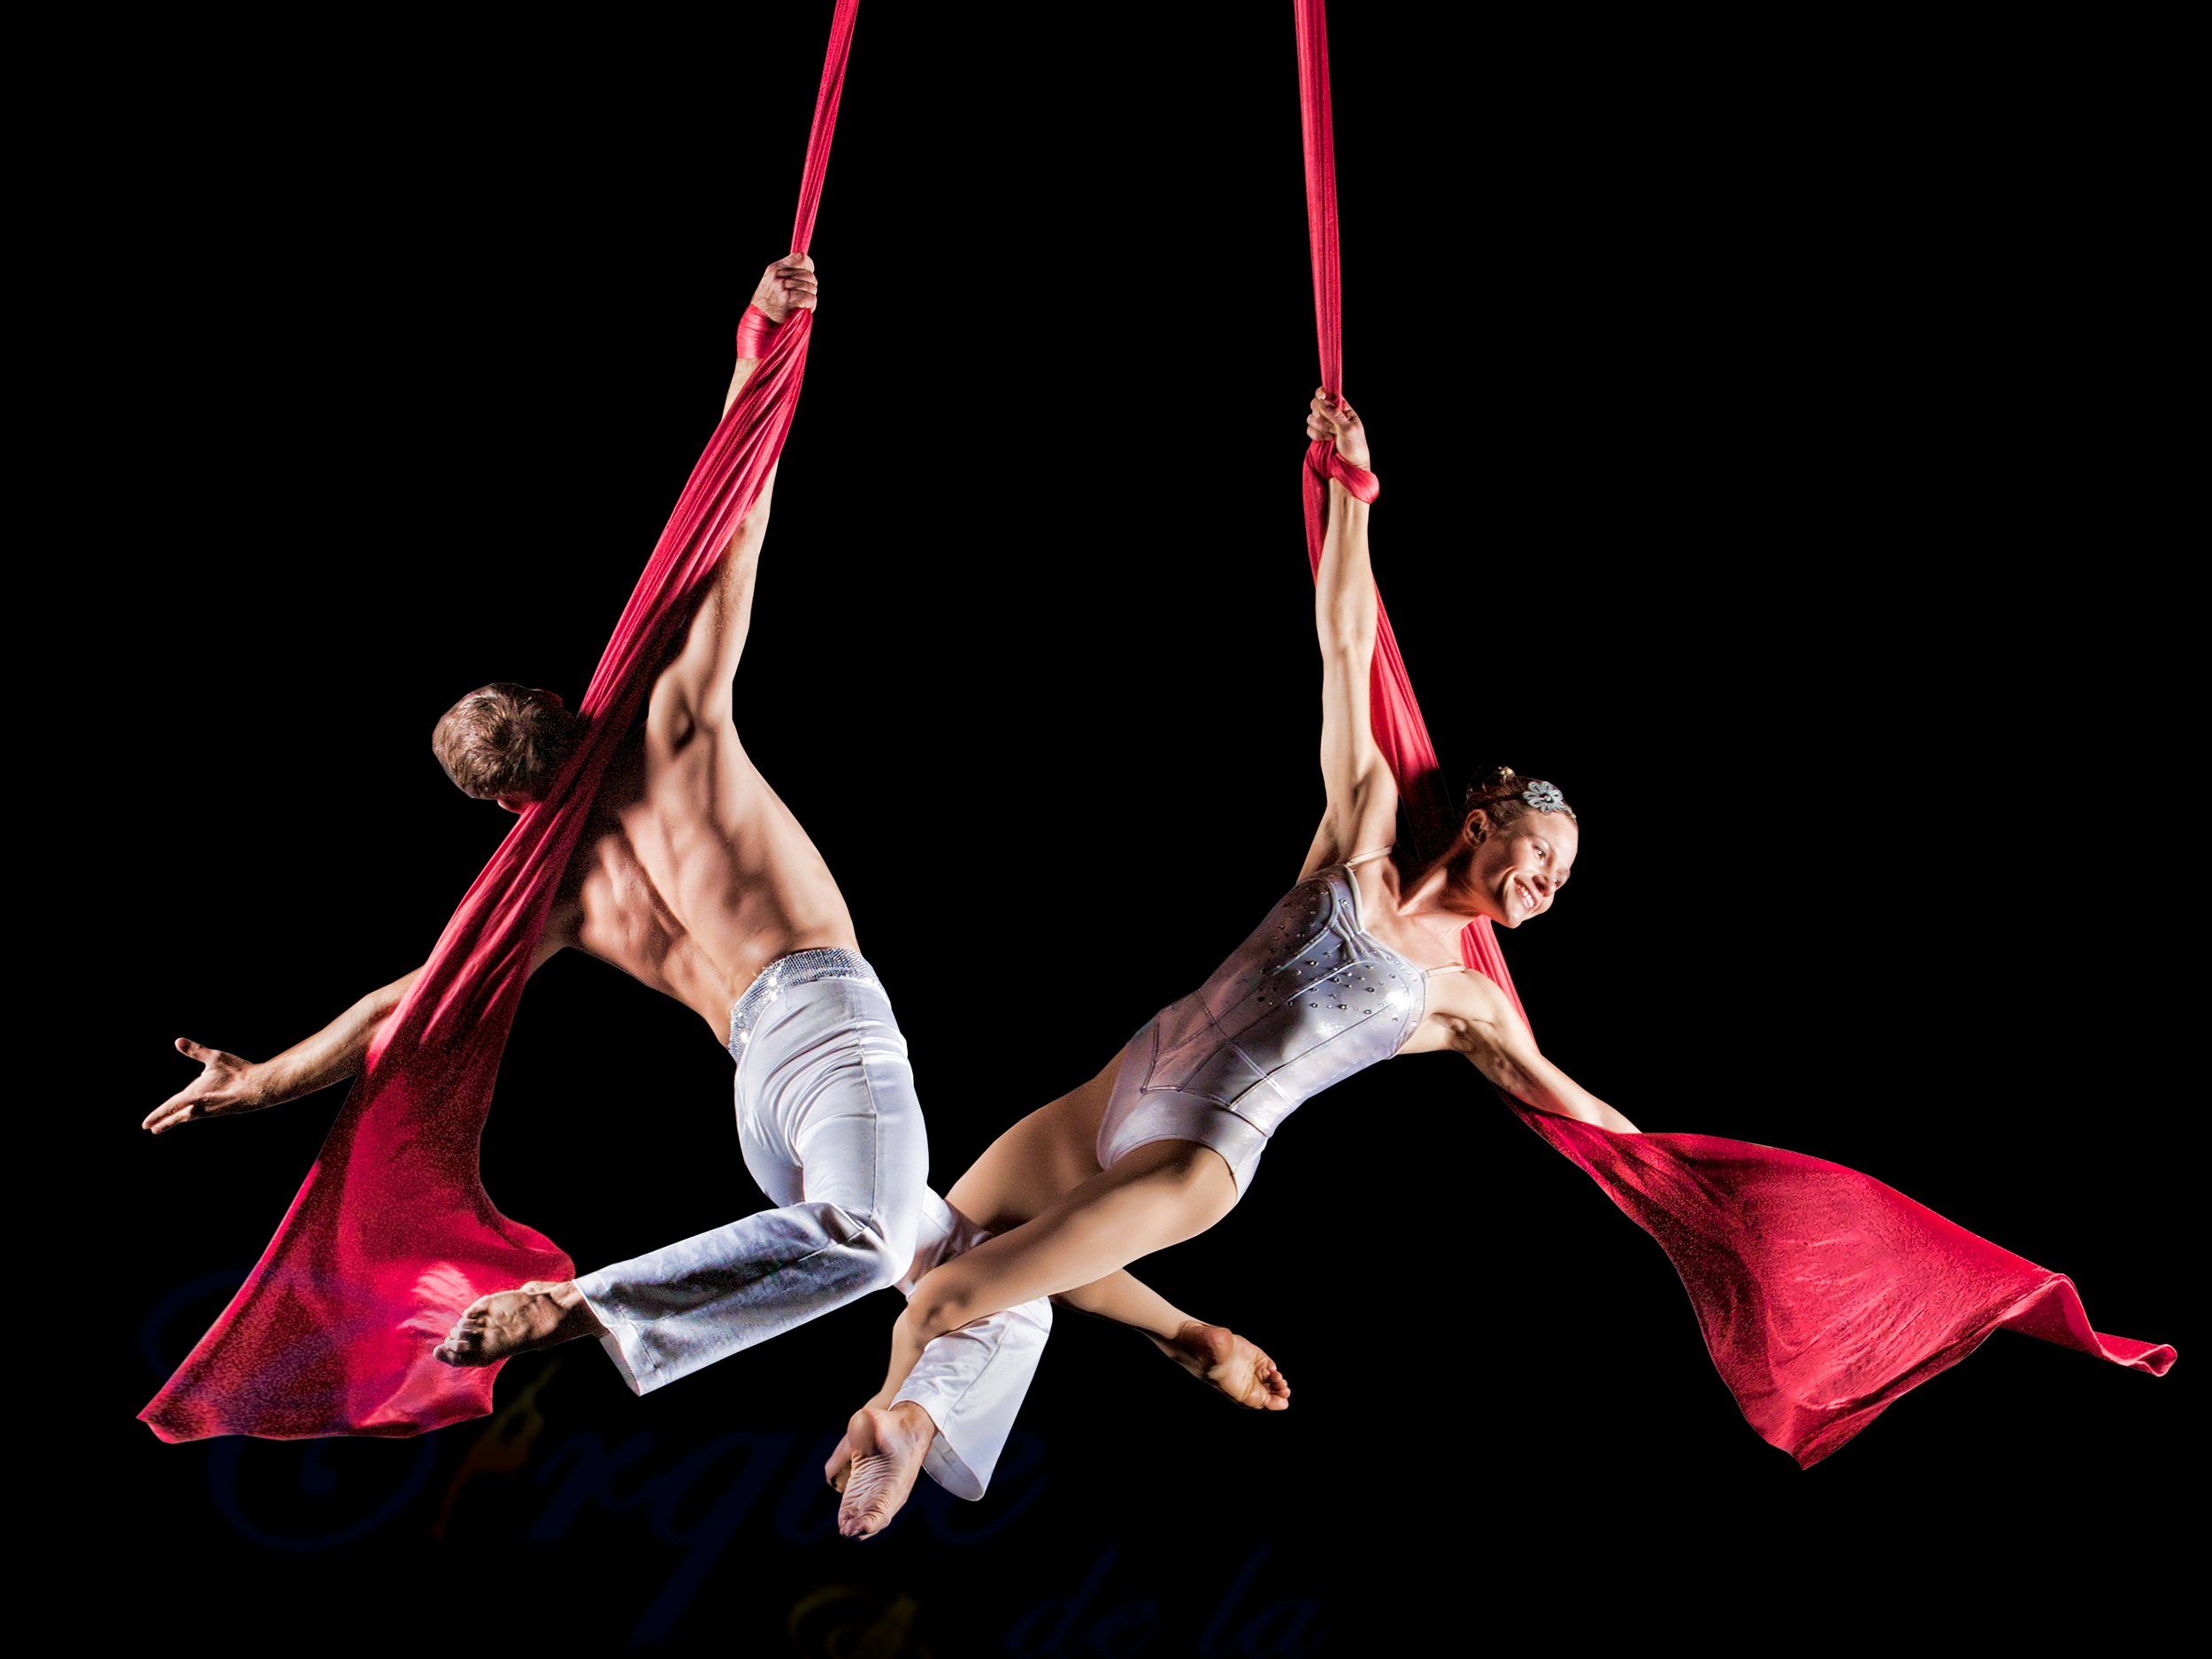 Cirque de la Symphonie - Saturday, May 30, 2019 - 7:30 pm*Gallo Center For the ArtsDavid Lockington, conductorTickets Starting at $19($12 Student Tickets are available for all classic concerts.)